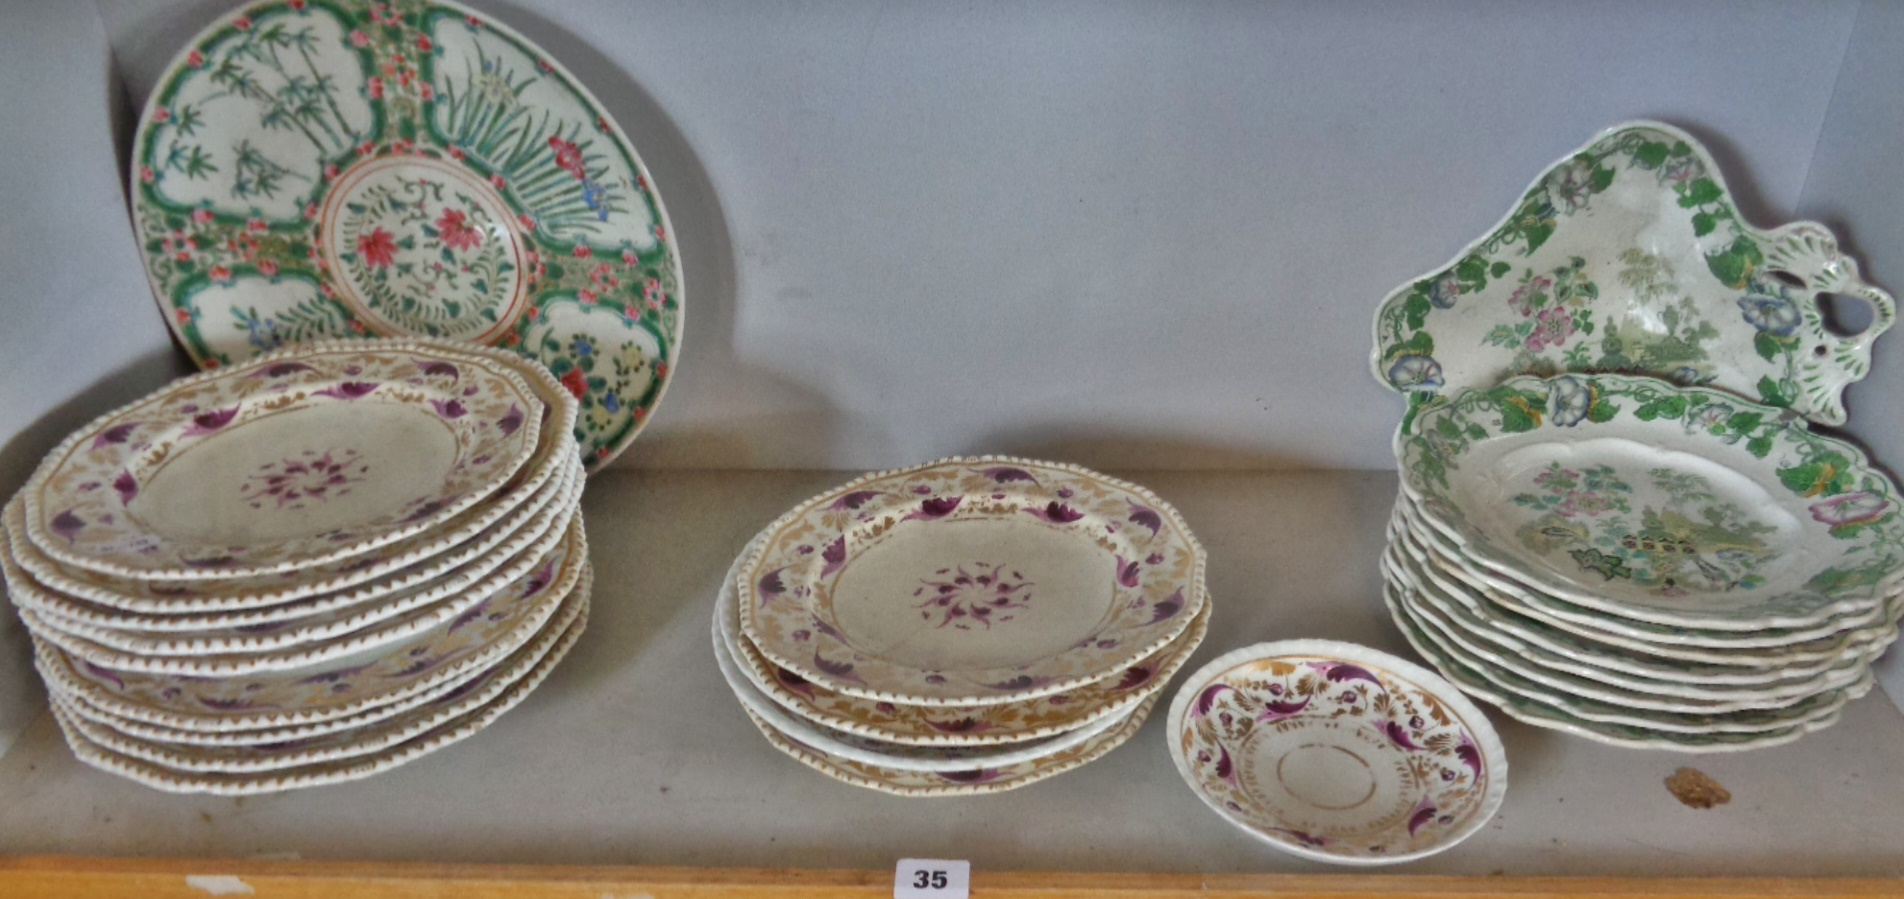 Lot 35 - Early 19th c. Royal Crown Derby plates, etc. (some A/F)